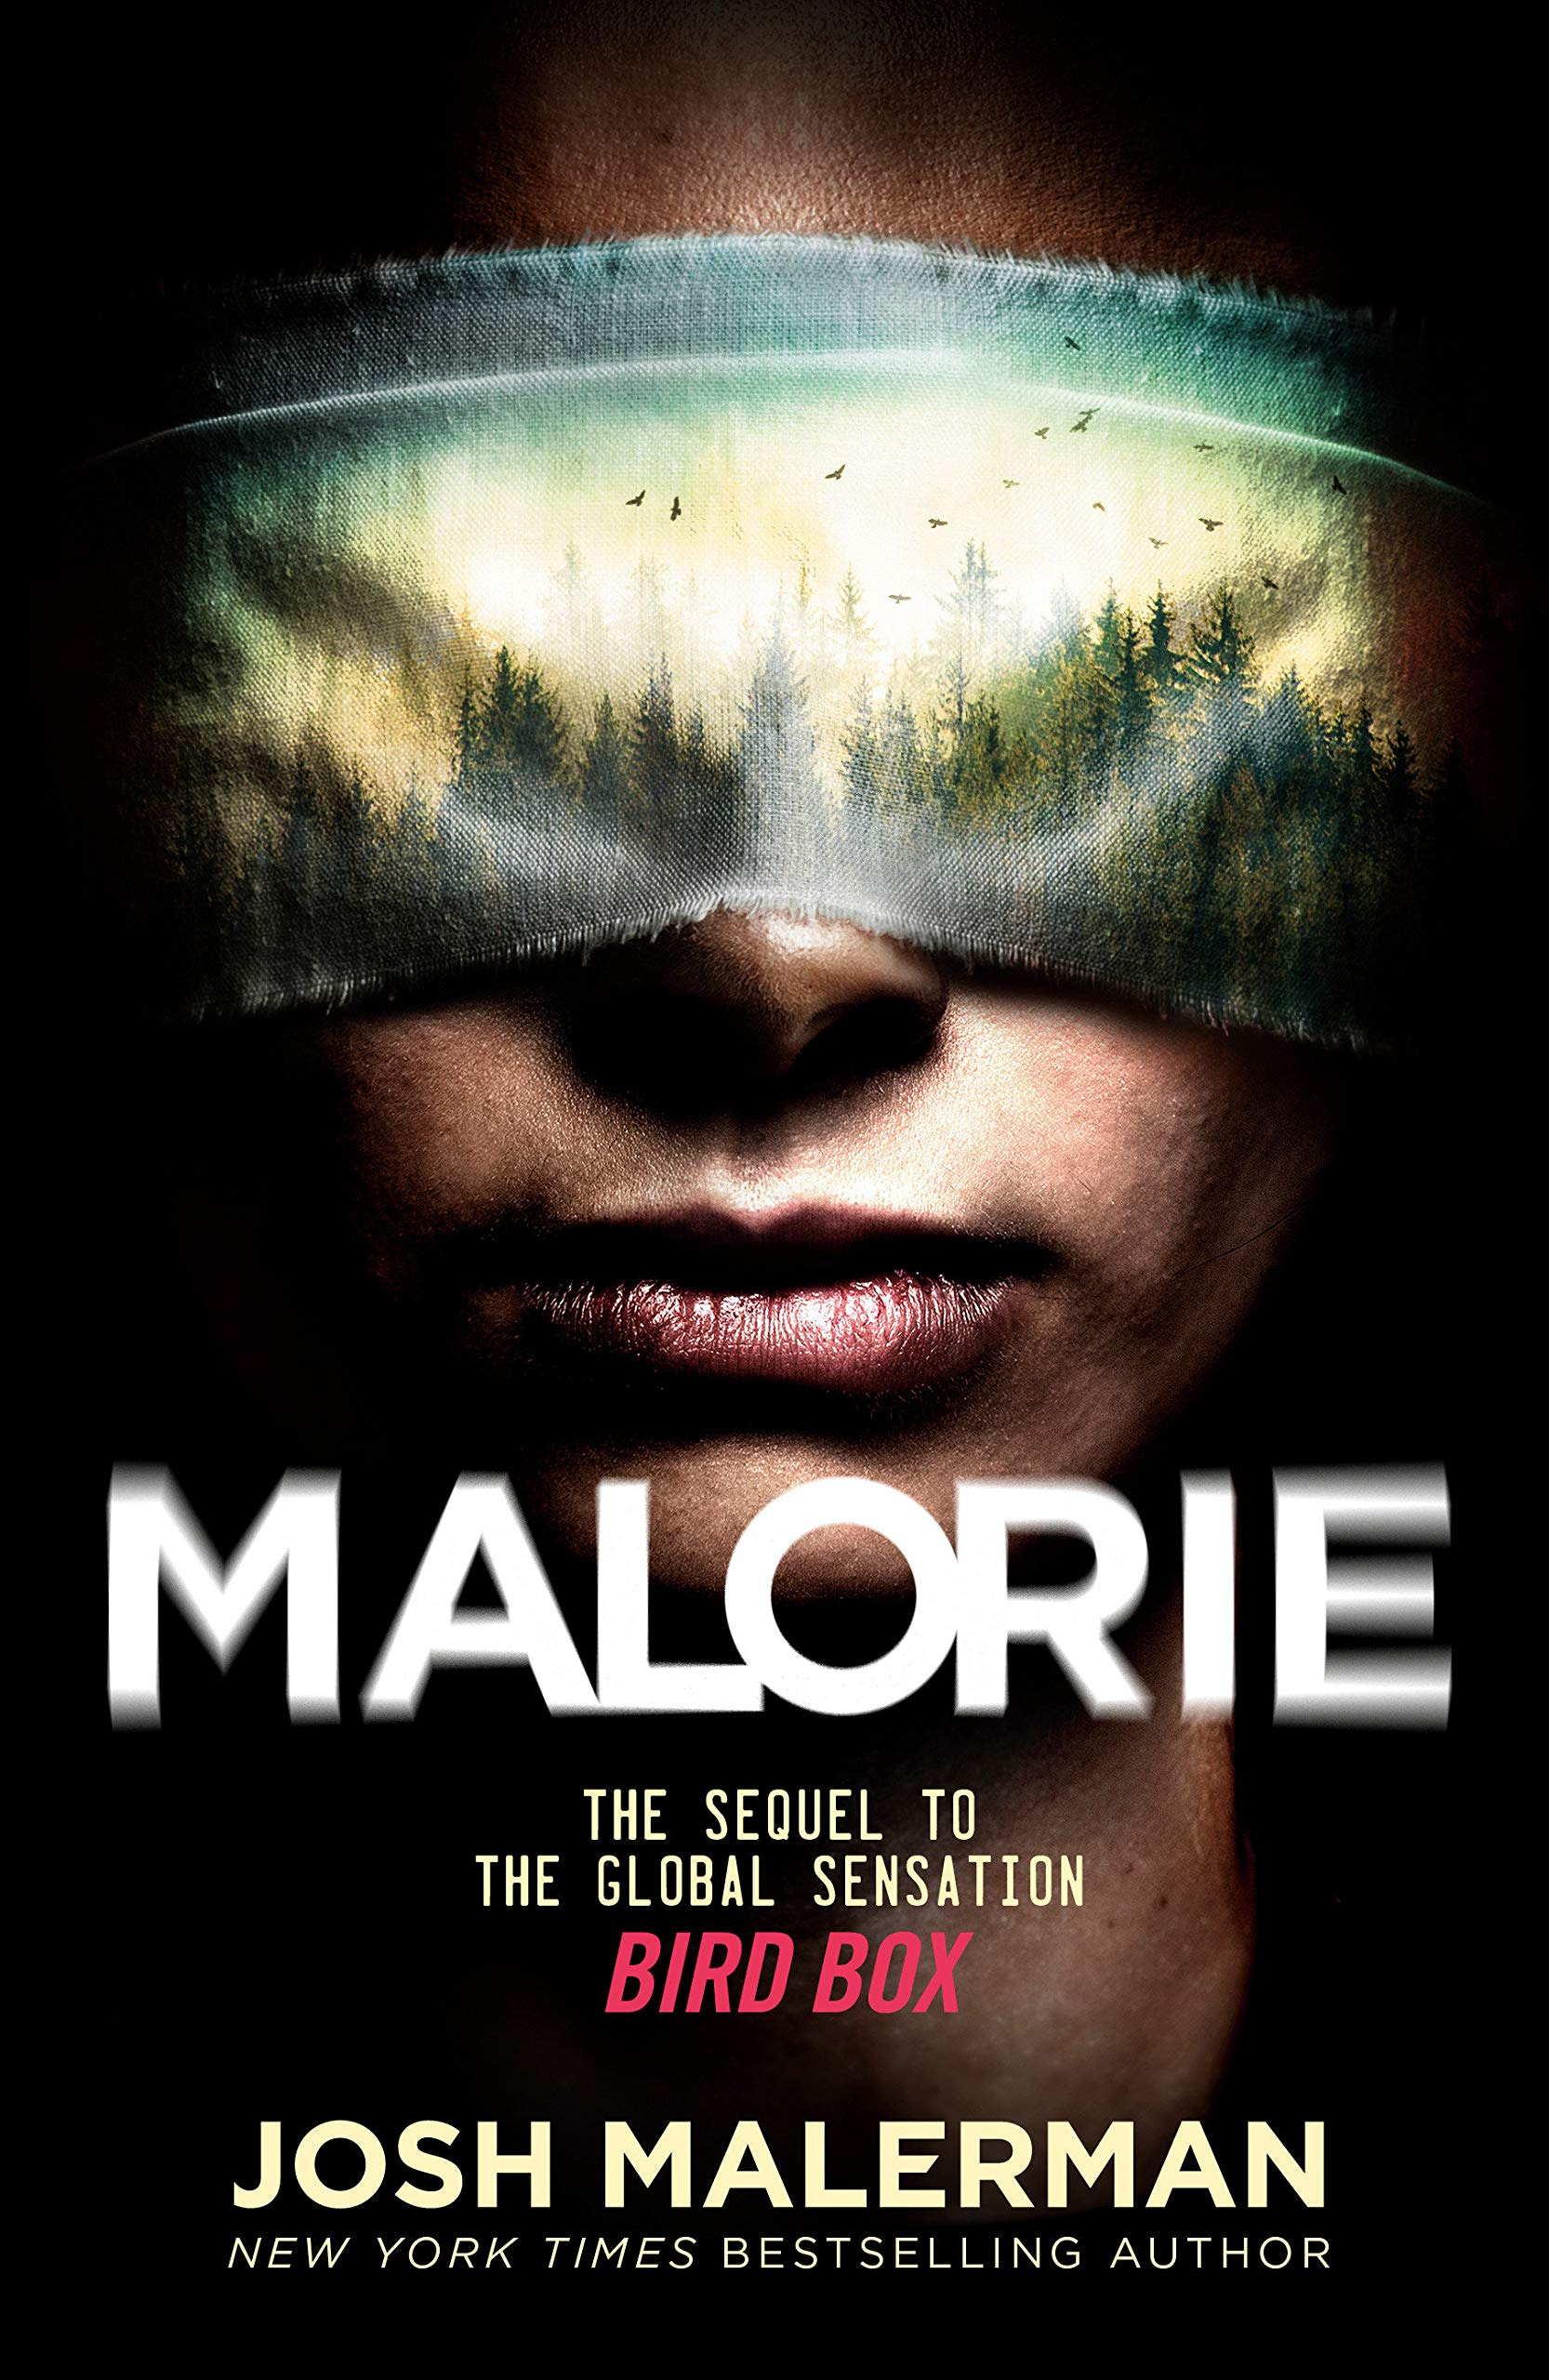 Malorie A Bird Box Novel Malerman Josh 9780593156858 Amazon Com Books Released in feb 2011, born this way went to #1 and garnered comparisons to express yourself by madonna and waterfalls by tlc. malorie a bird box novel malerman